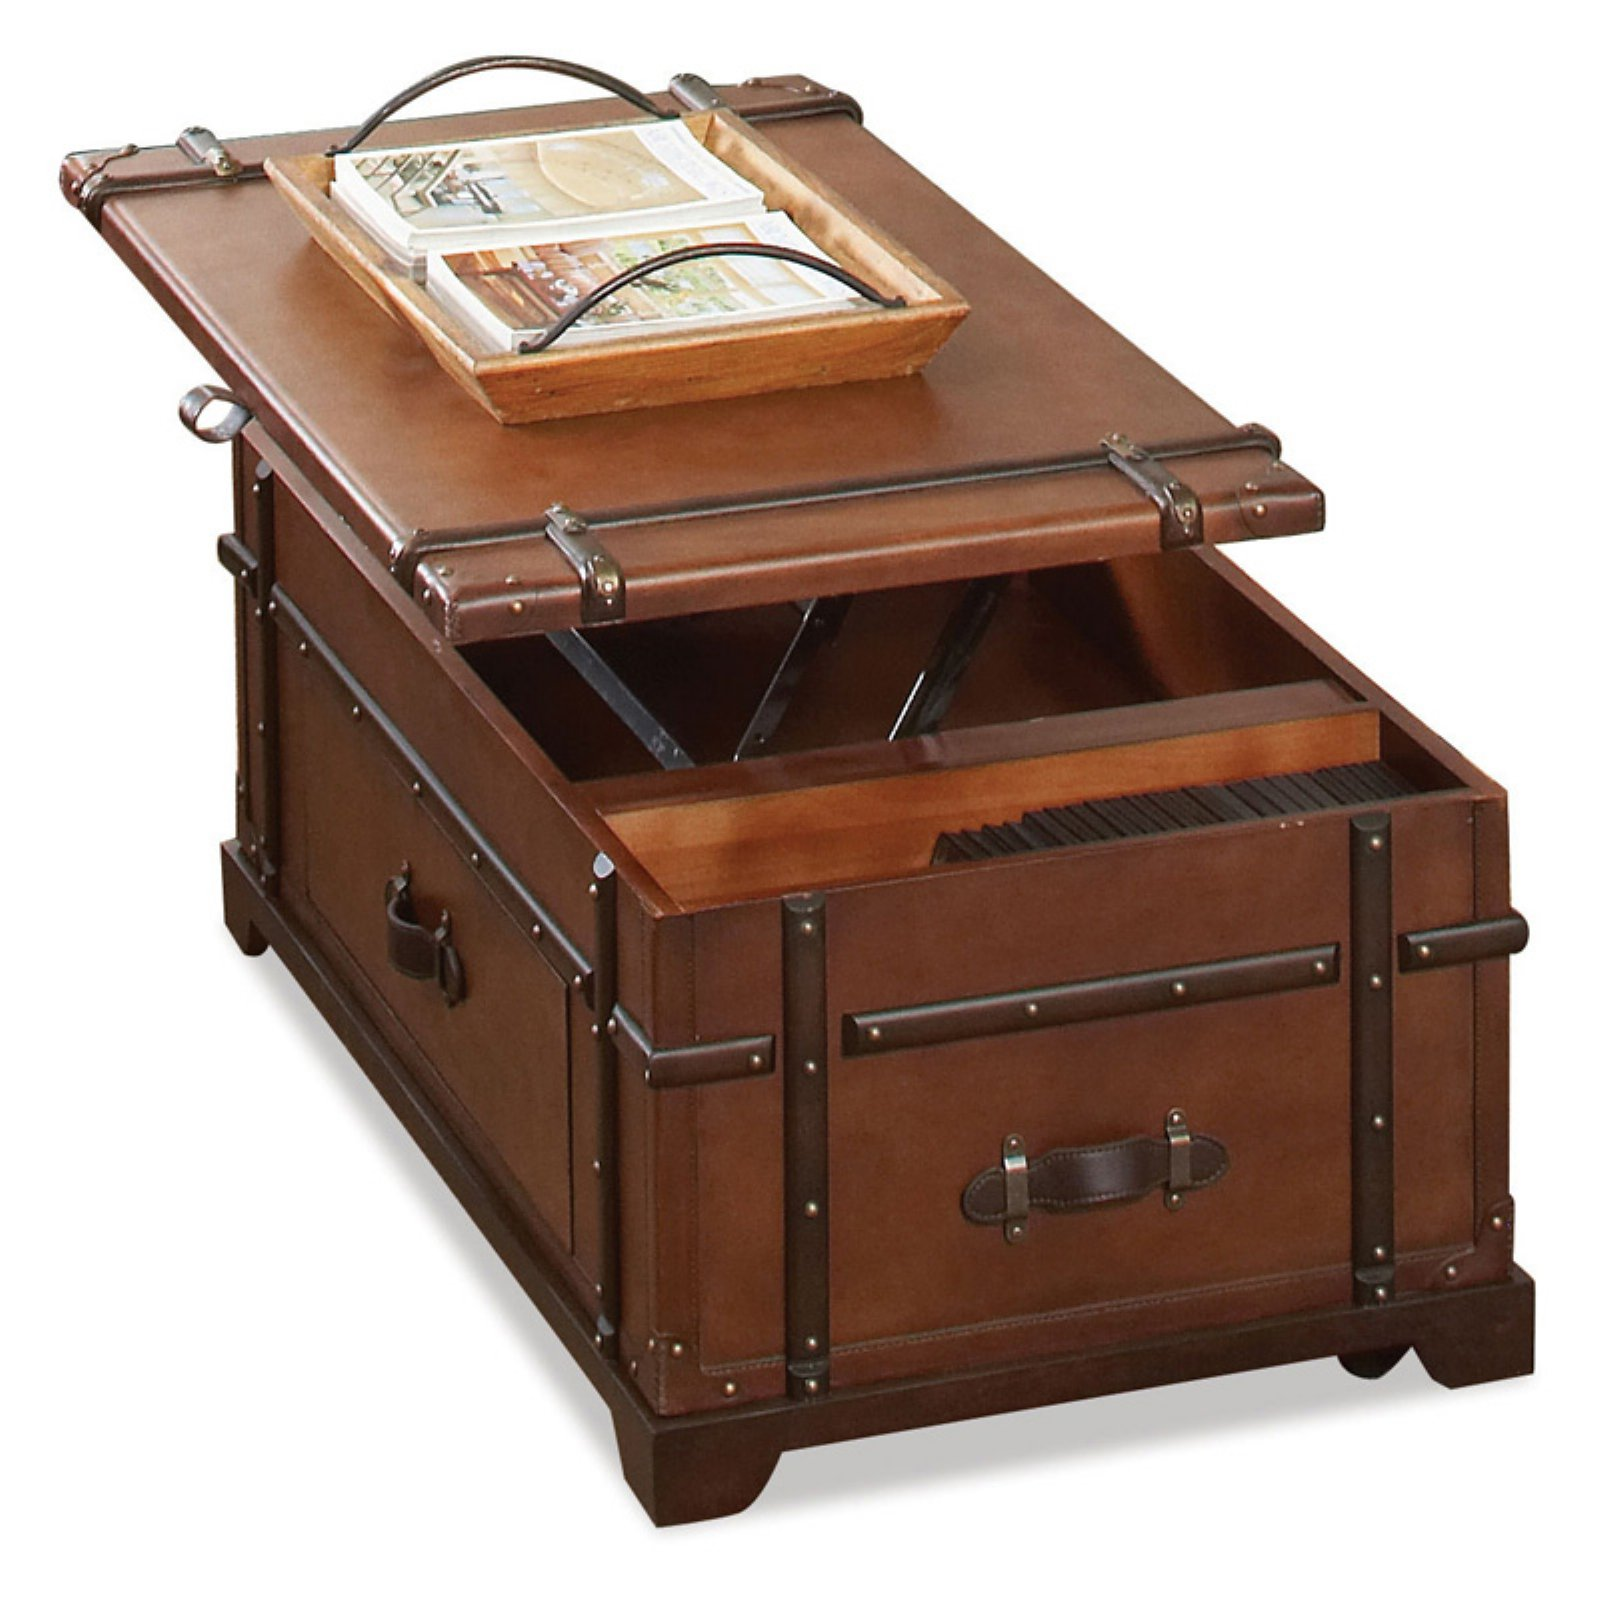 Riverside Latitudes Steamer Trunk Lift Top Cocktail Table - Aged Cognac Wood